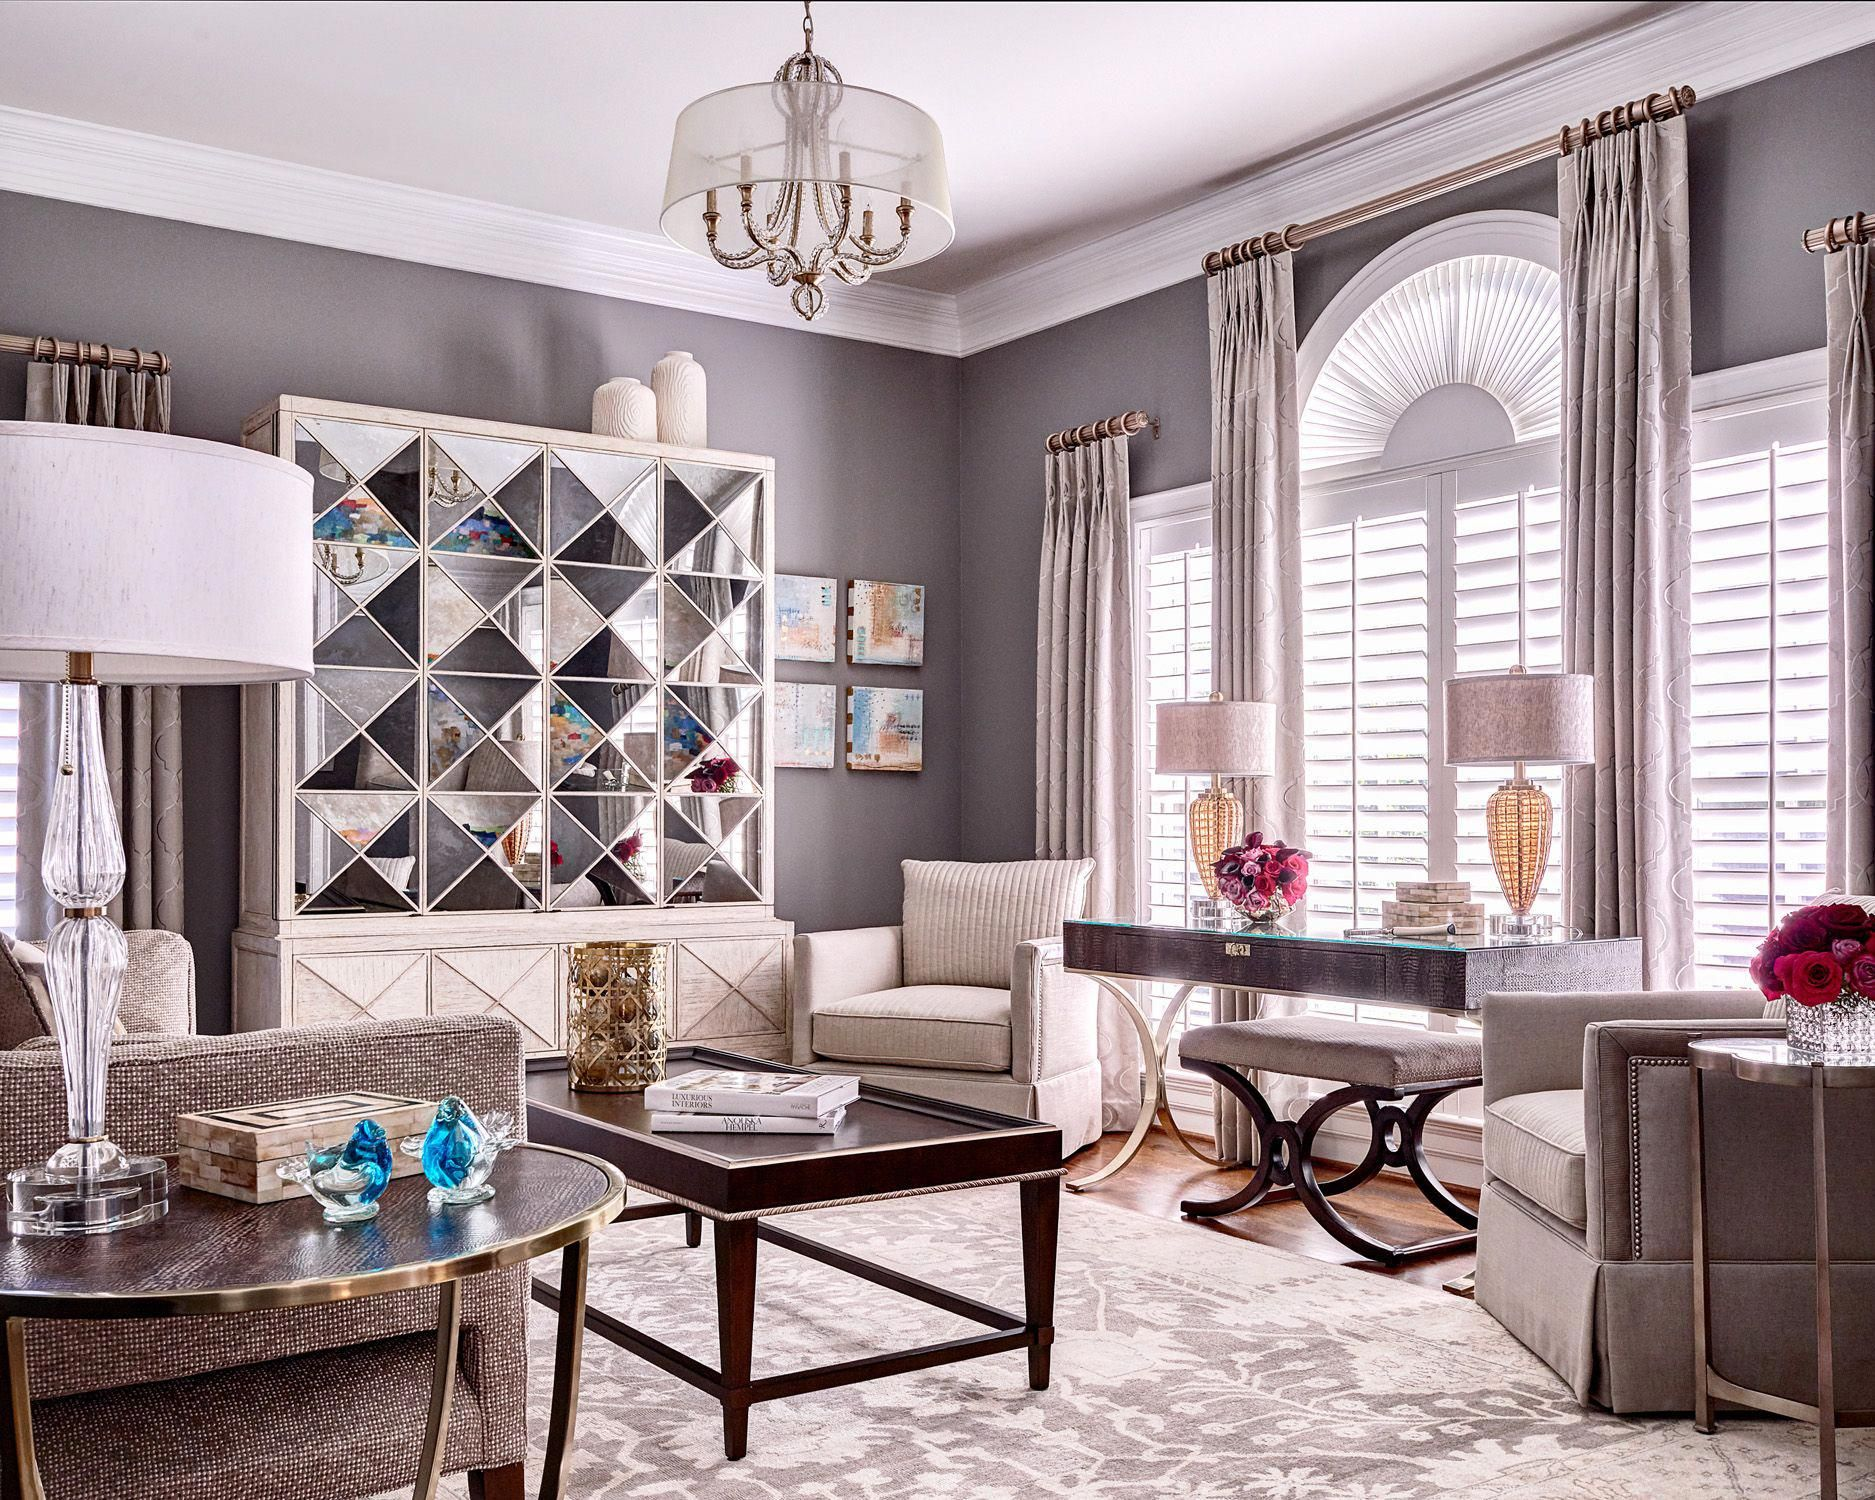 best interior designers in north carolina   what an honor for wanda  horton design to be included this list interiortalent also rh pinterest